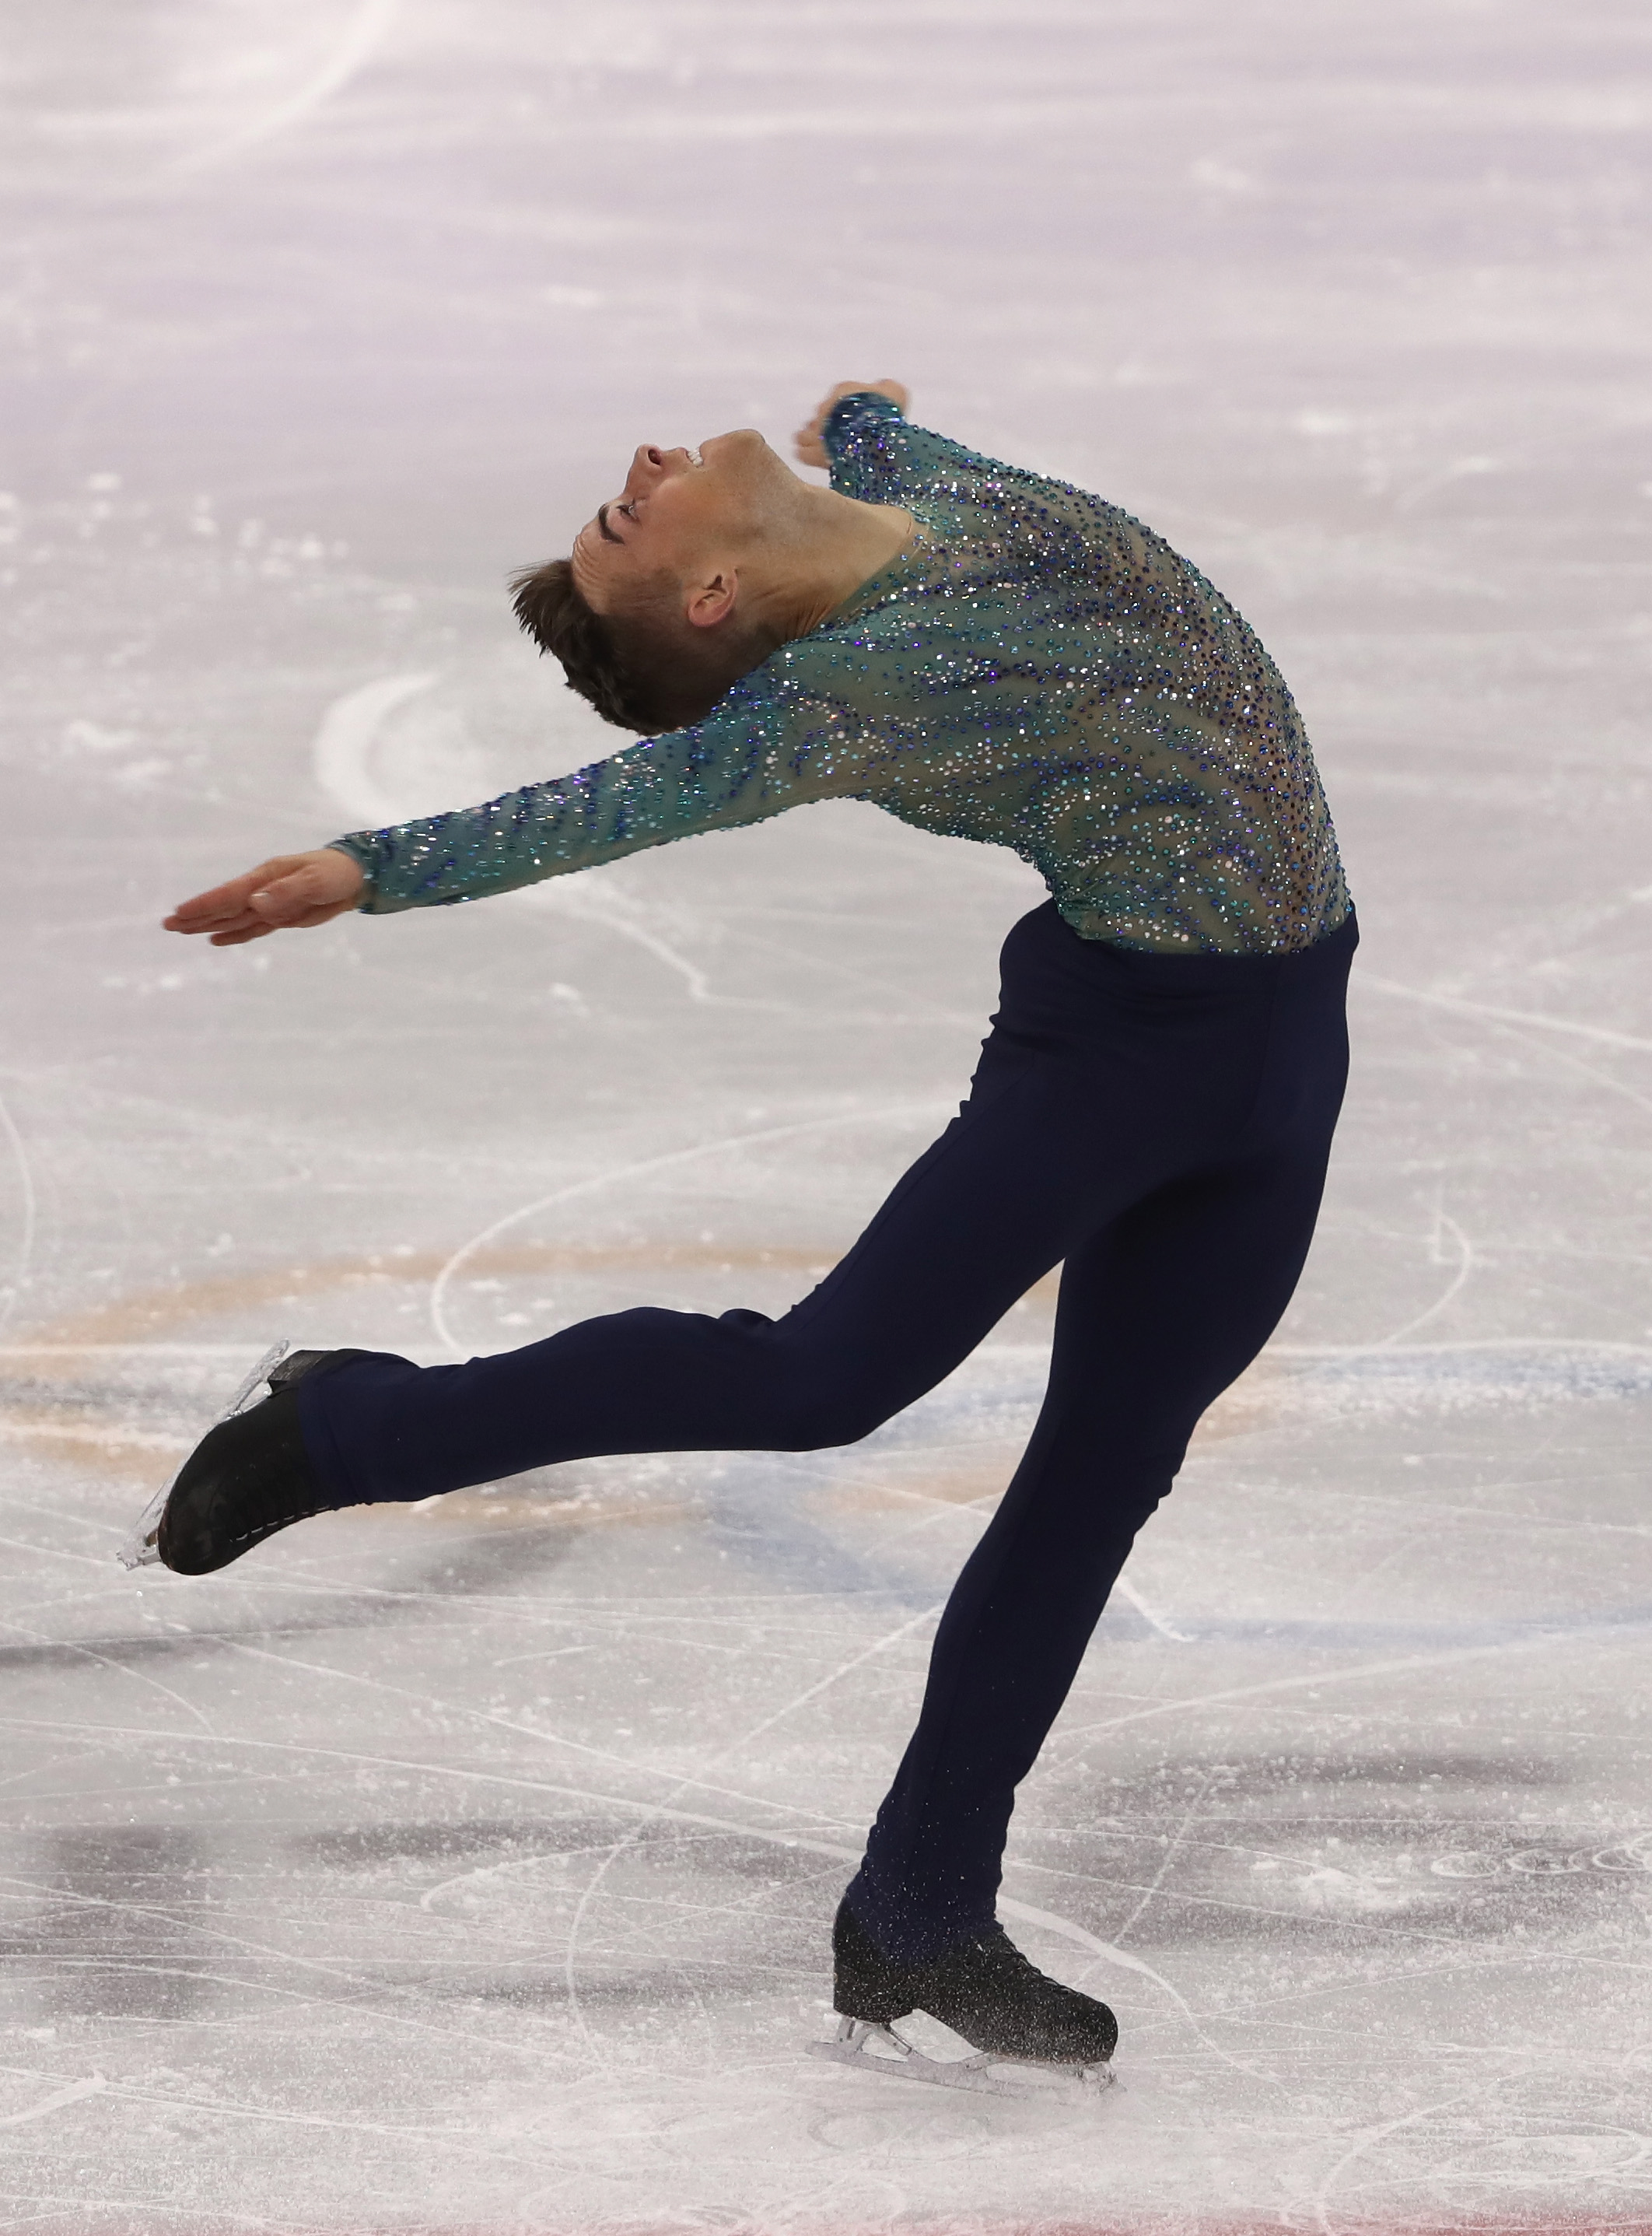 hindu single men in rippon After making headlines for a back-and-forth feud with vice president mike pence, us olympic skater adam rippon made his debut on pyeongchang winter olympics ice.